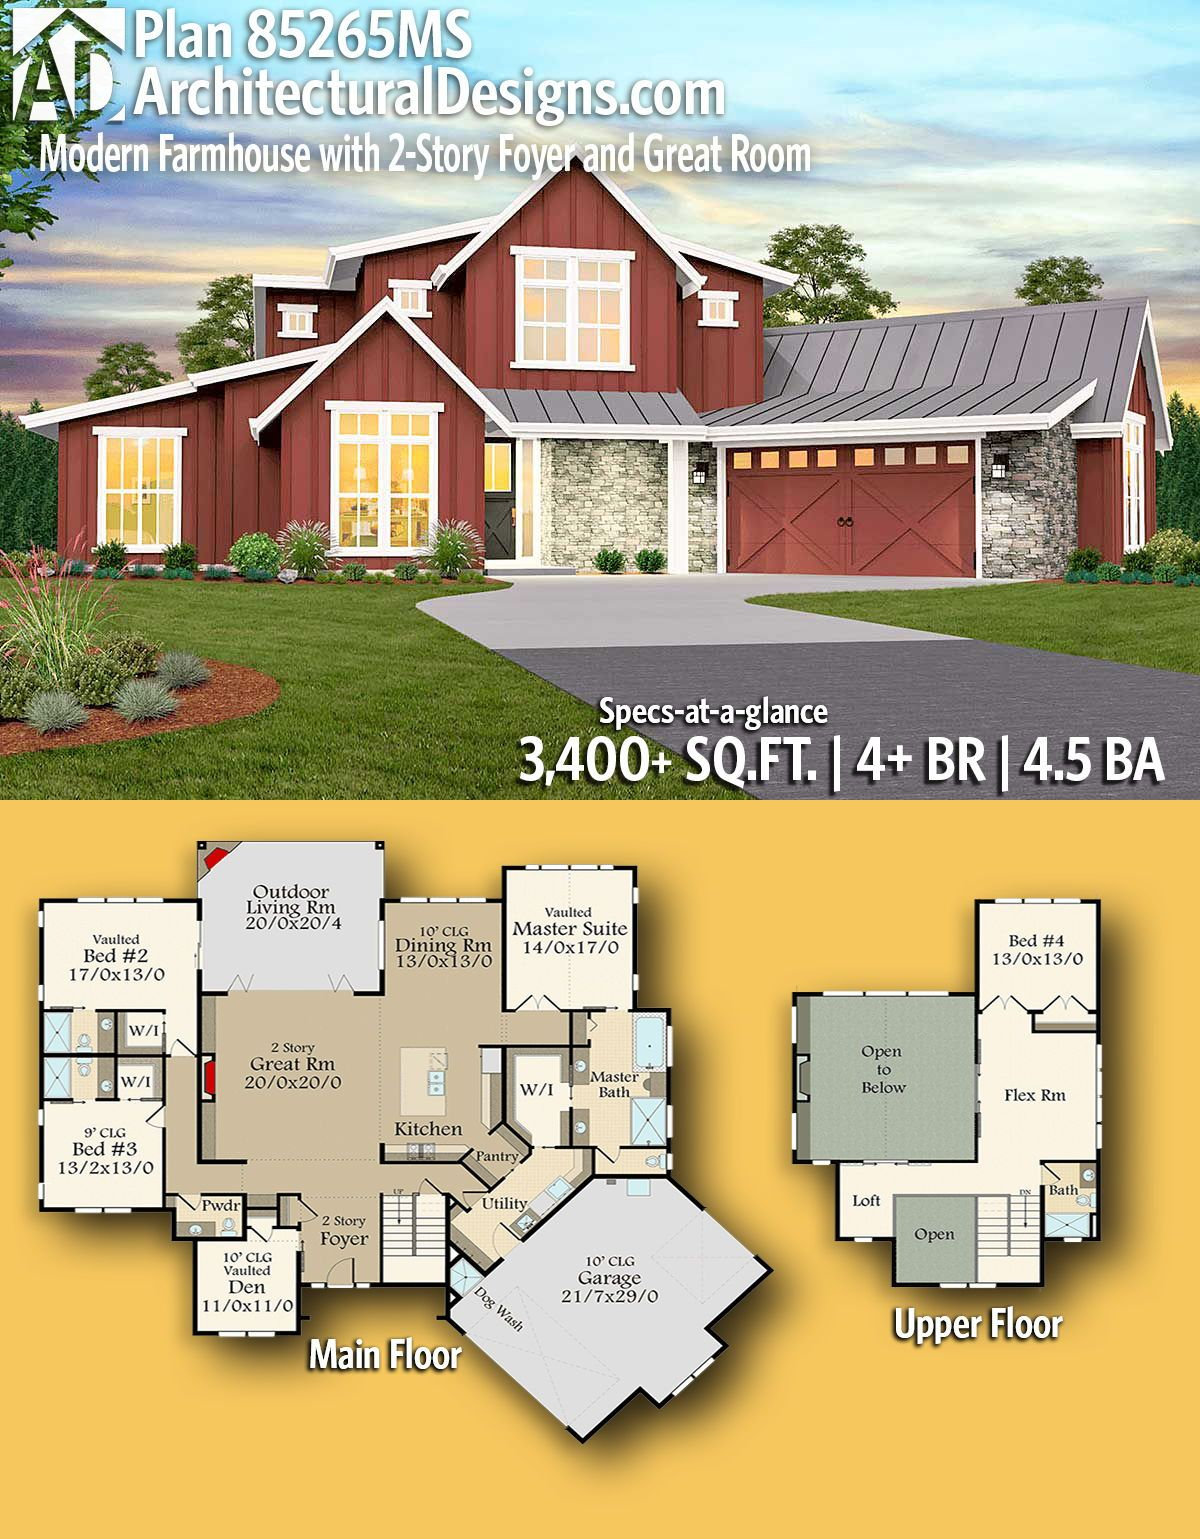 Plan 85265ms Modern Farmhouse With 2 Story Foyer And Great Room Modern Farmhouse Plans Basement House Plans House Plans Farmhouse